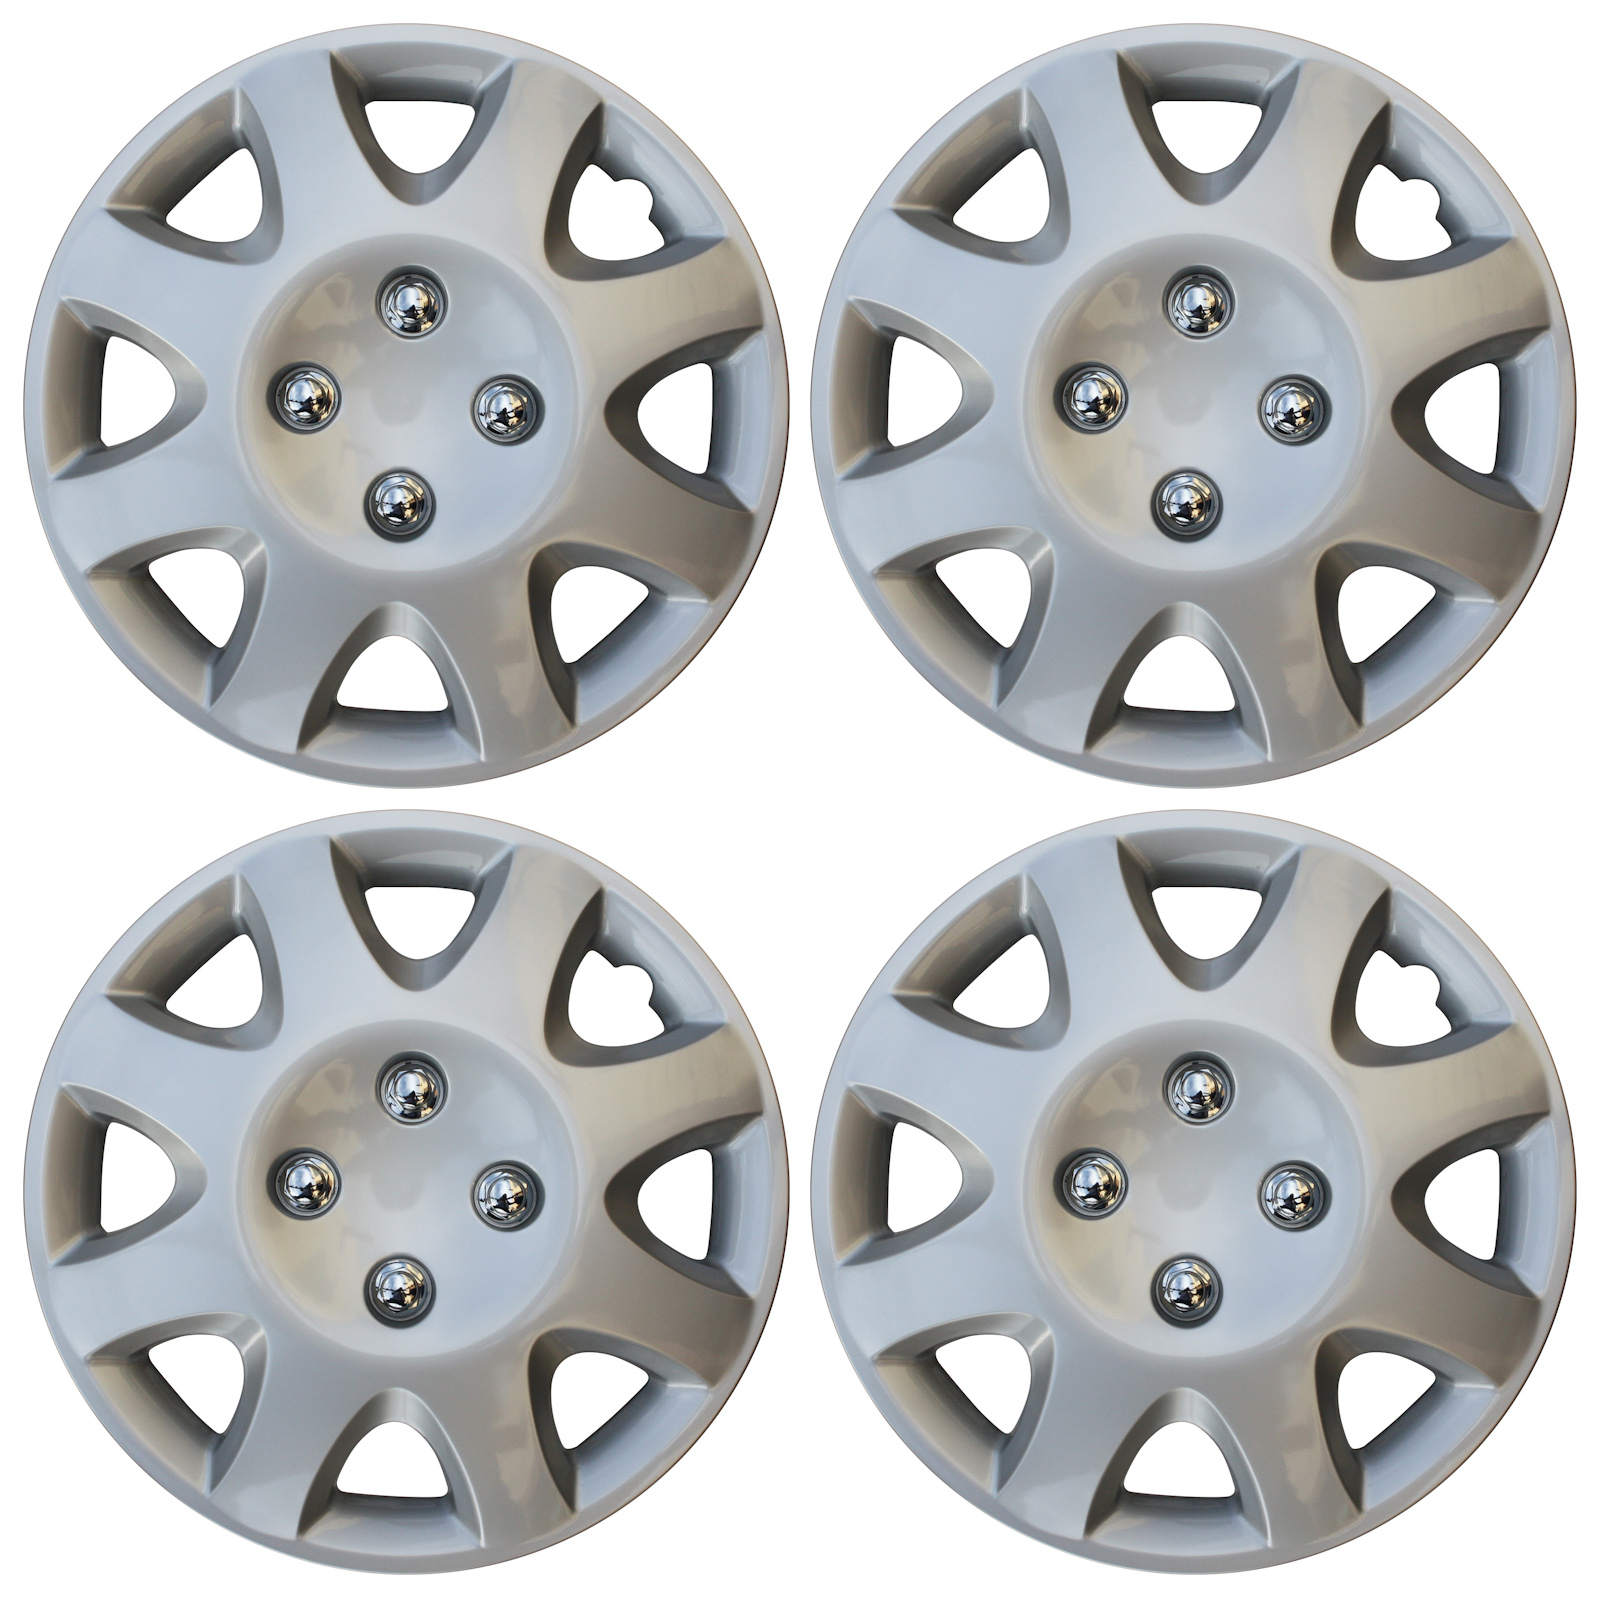 hight resolution of 4 piece set 14 inch hub cap silver skin rim cover for steel wheel covers caps